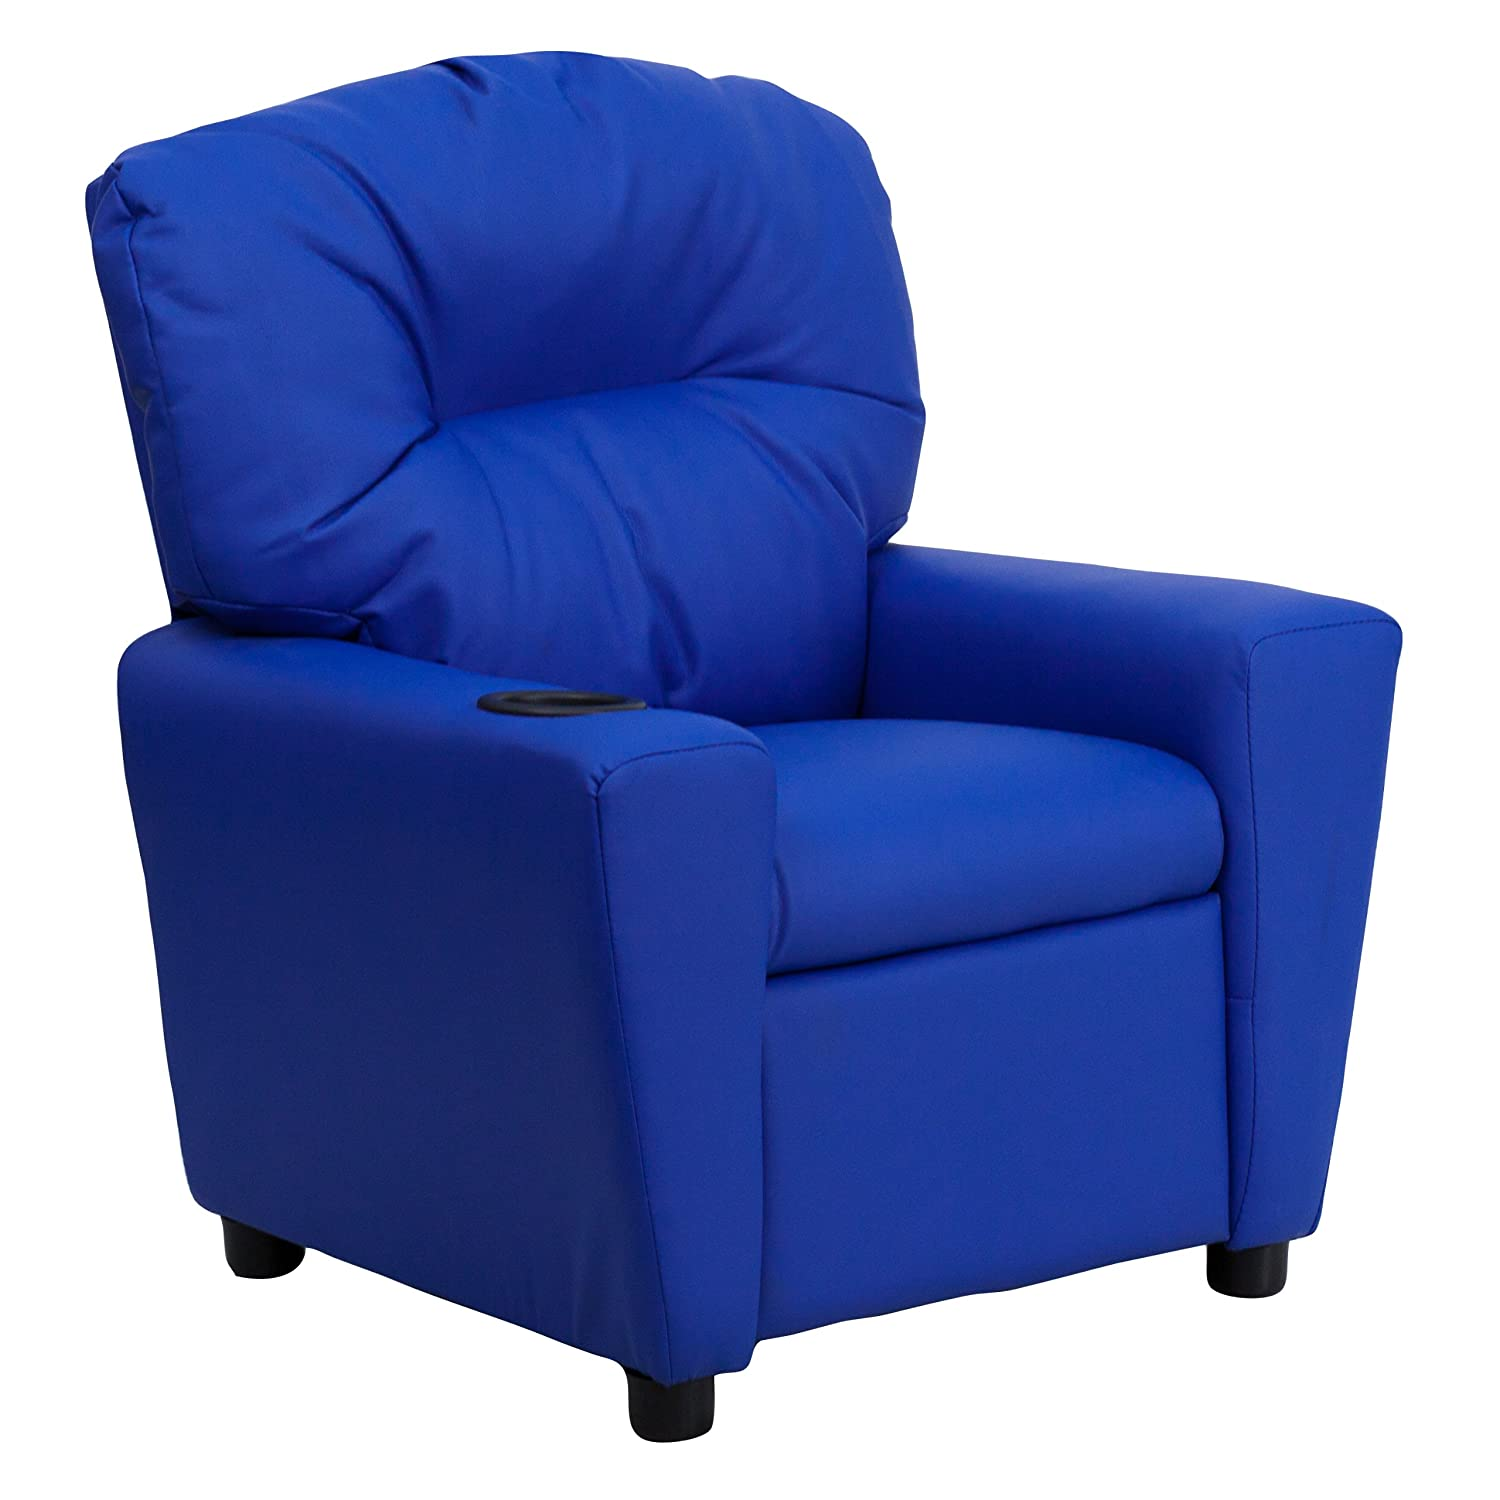 Contemporary Blue Vinyl San Diego Mall Large-scale sale Kids Cup with Recliner Holder